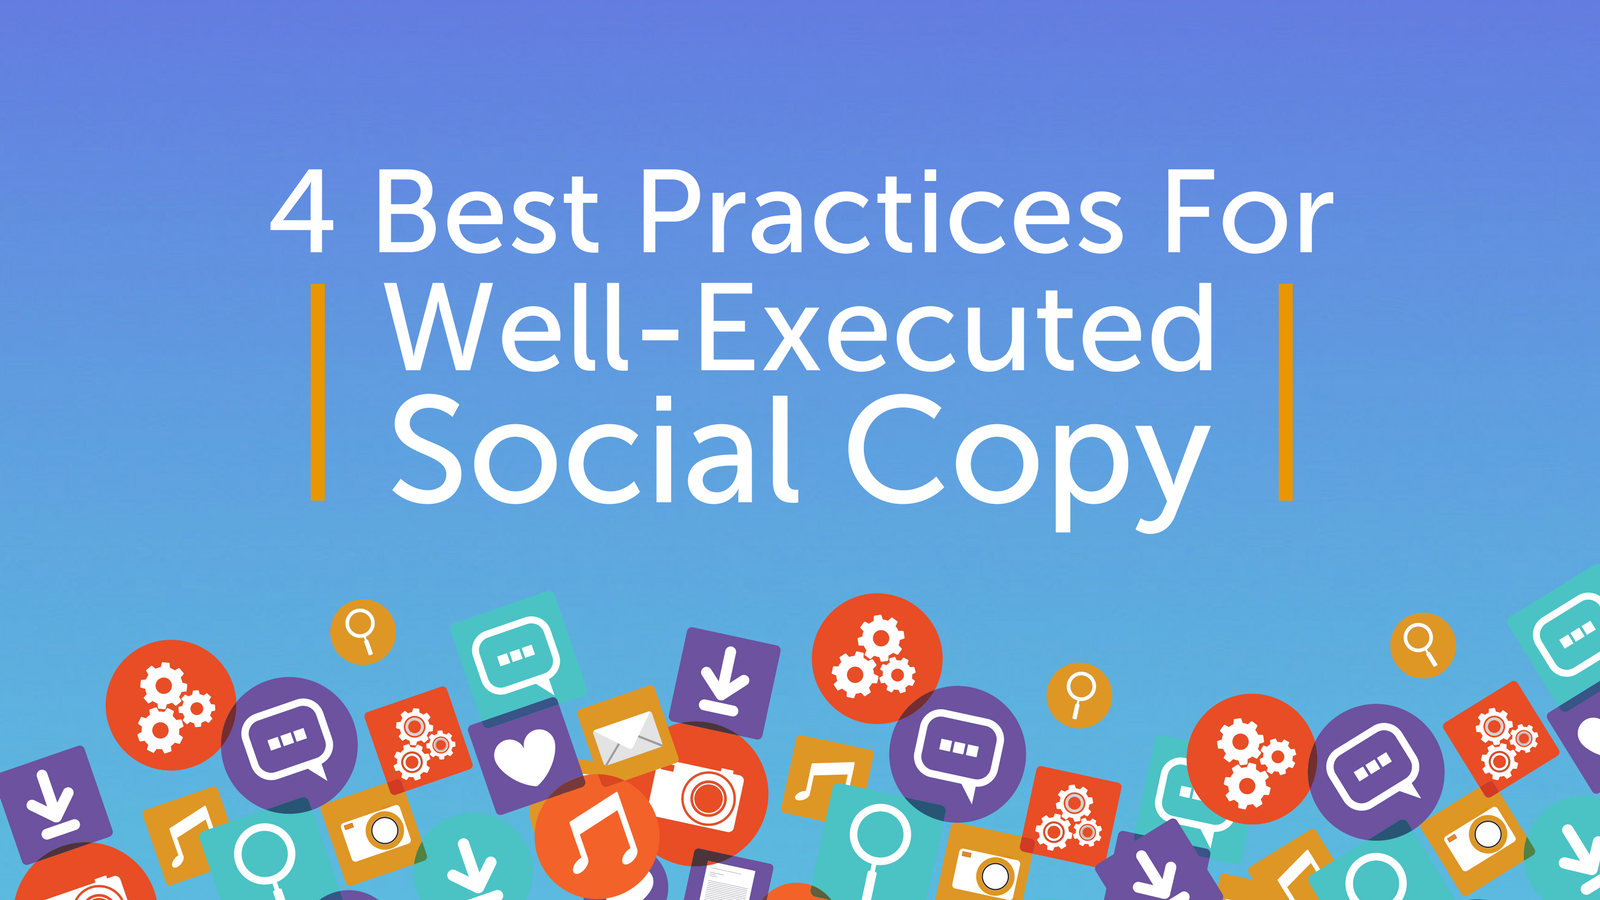 4 Best Practices for Well-Executed Social Copy